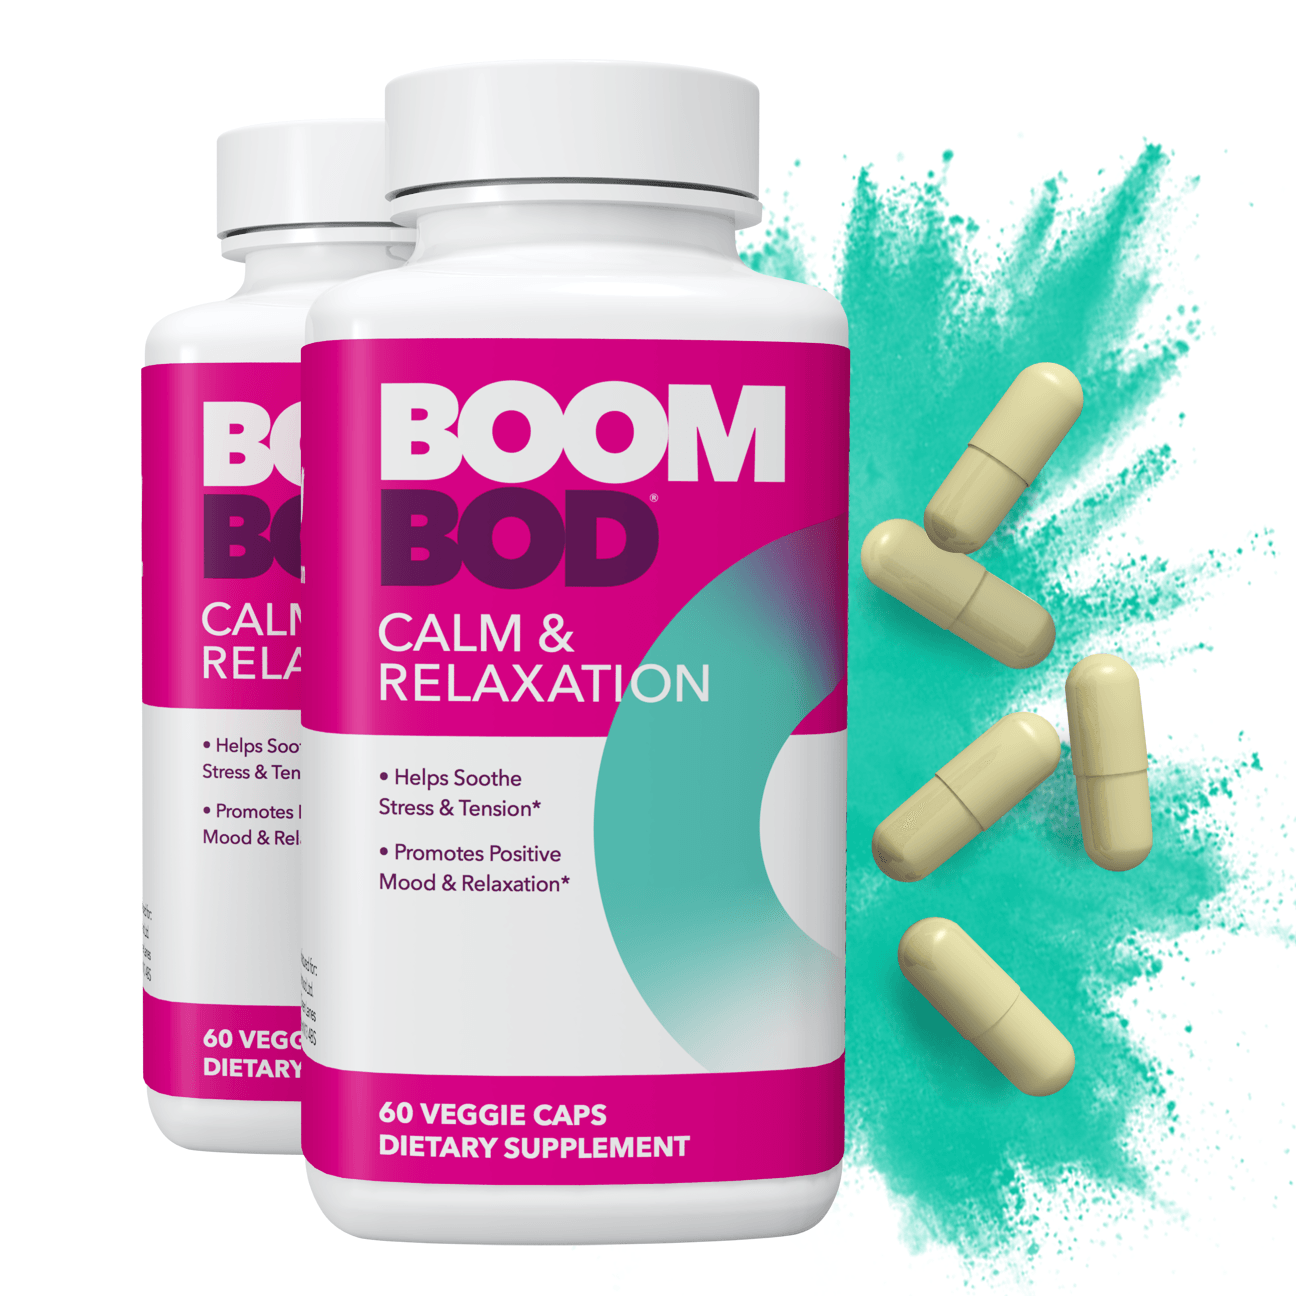 Boombod | Calm & Relaxation Supplement | 60 Day | 120 Count